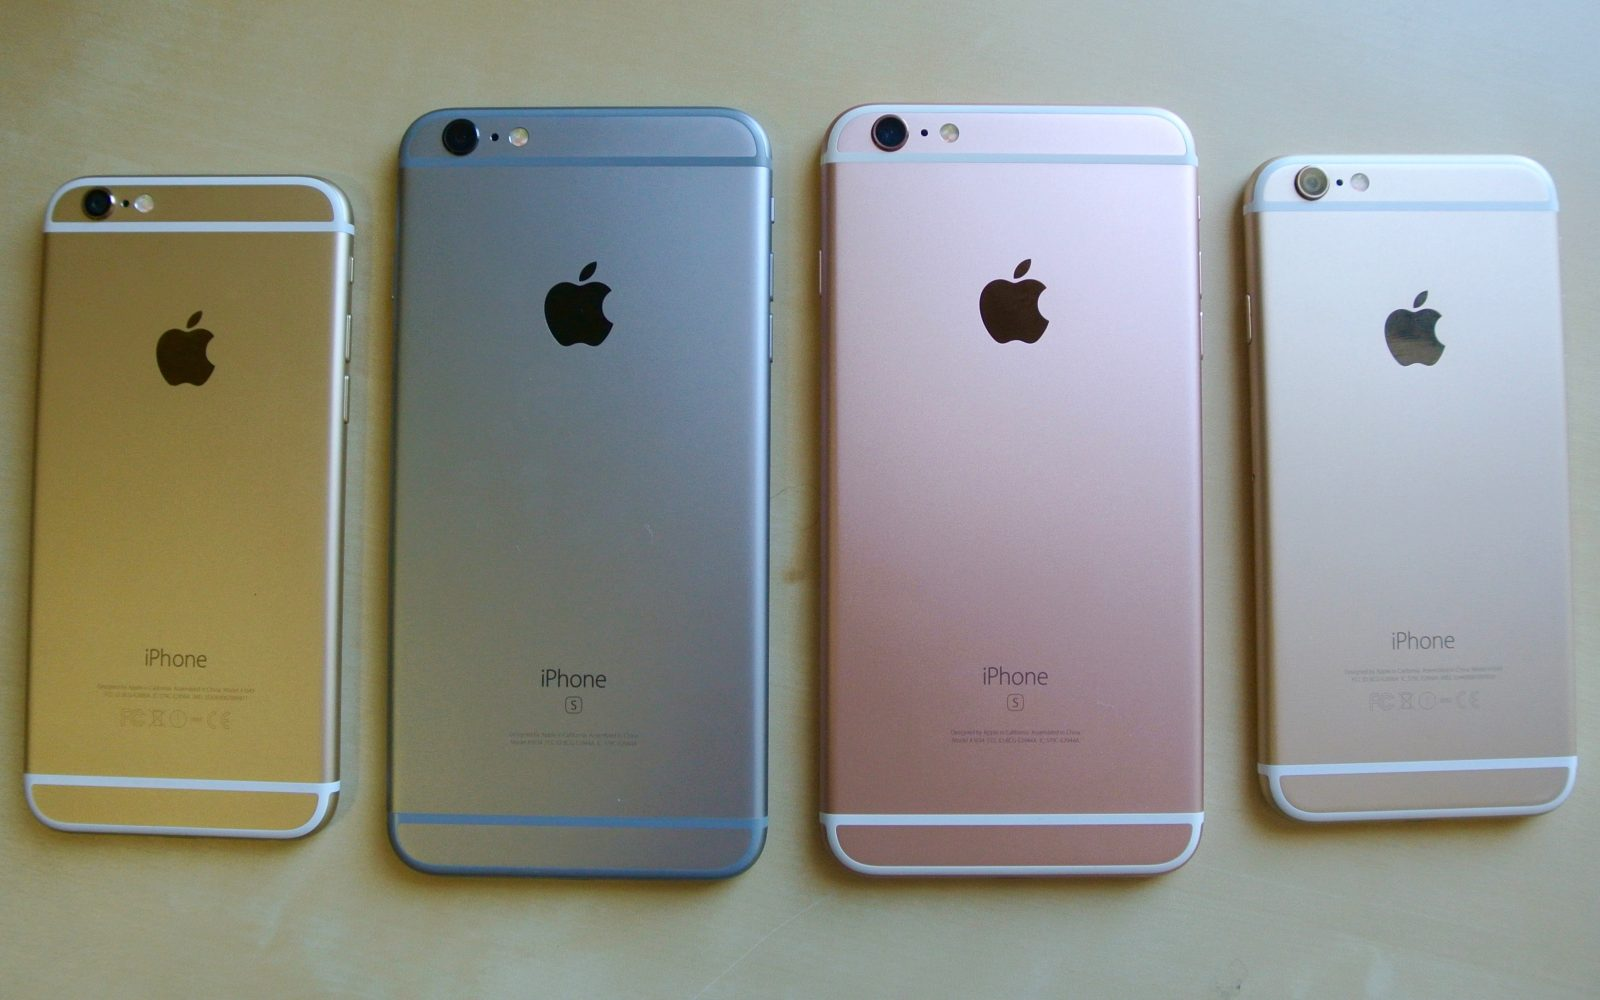 54a55cdfda312 iPhone 6s Plus  hands-on   first impressions with Space Gray + Rose Gold   Gallery